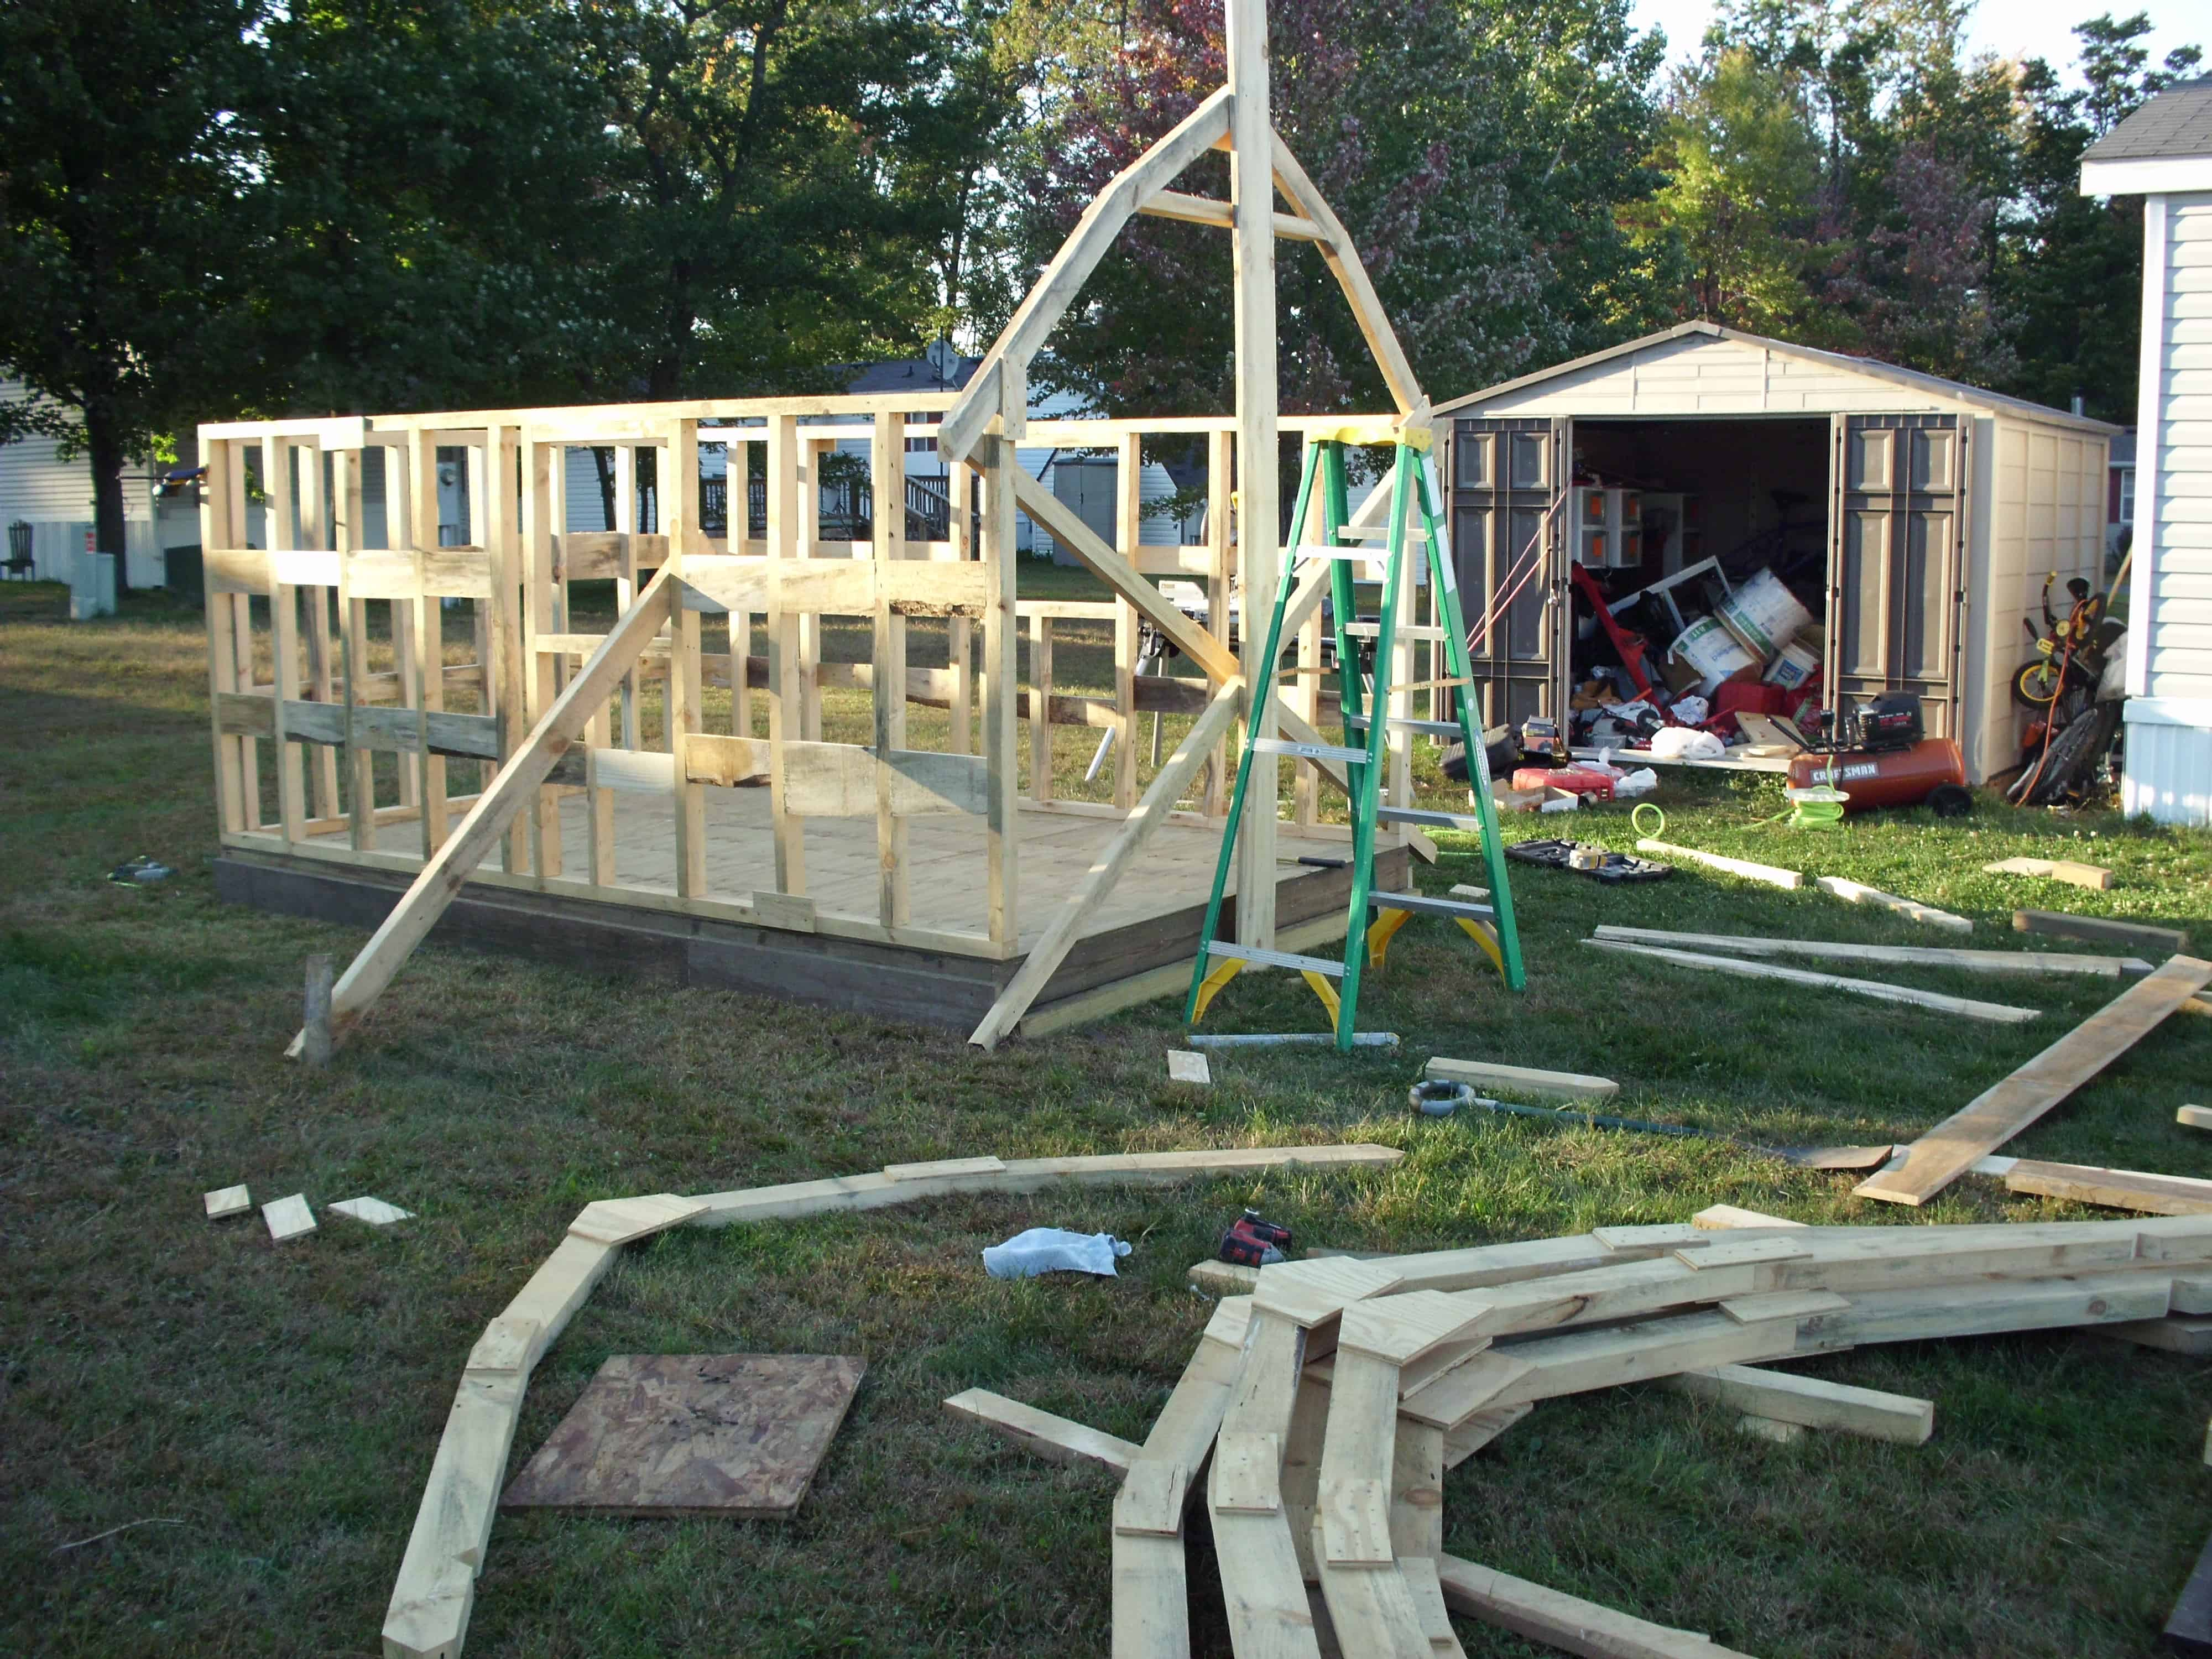 barn-shed-constructing-building-construct-build-create-design-reclaimed-materials-framing